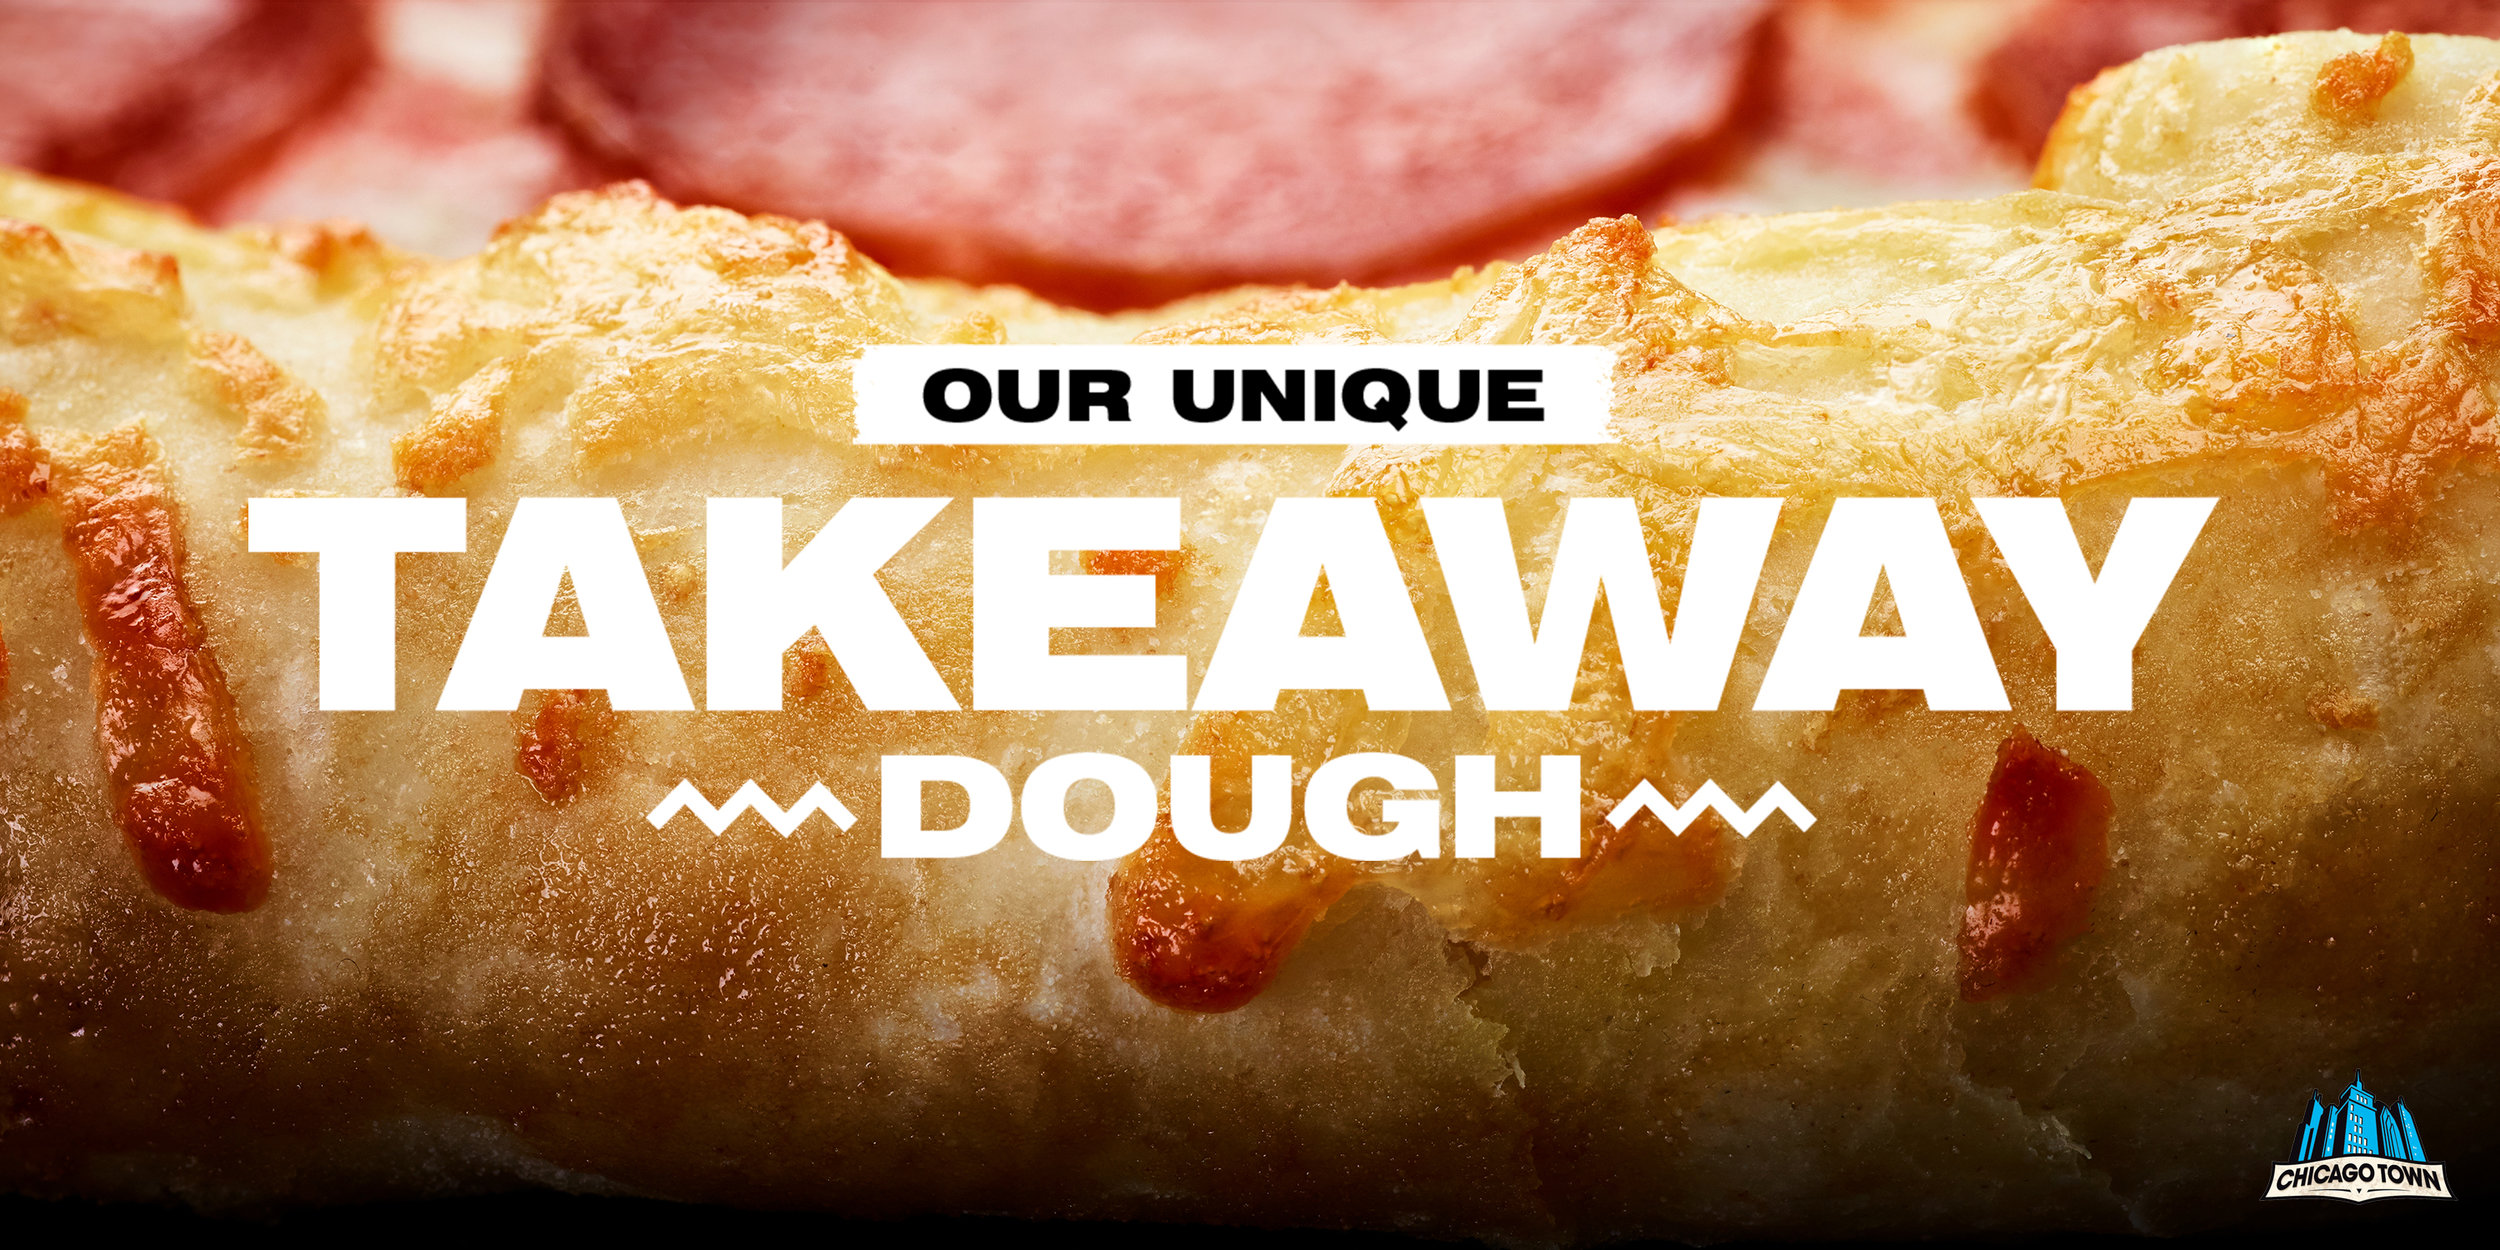 TakeawayDough1.jpg